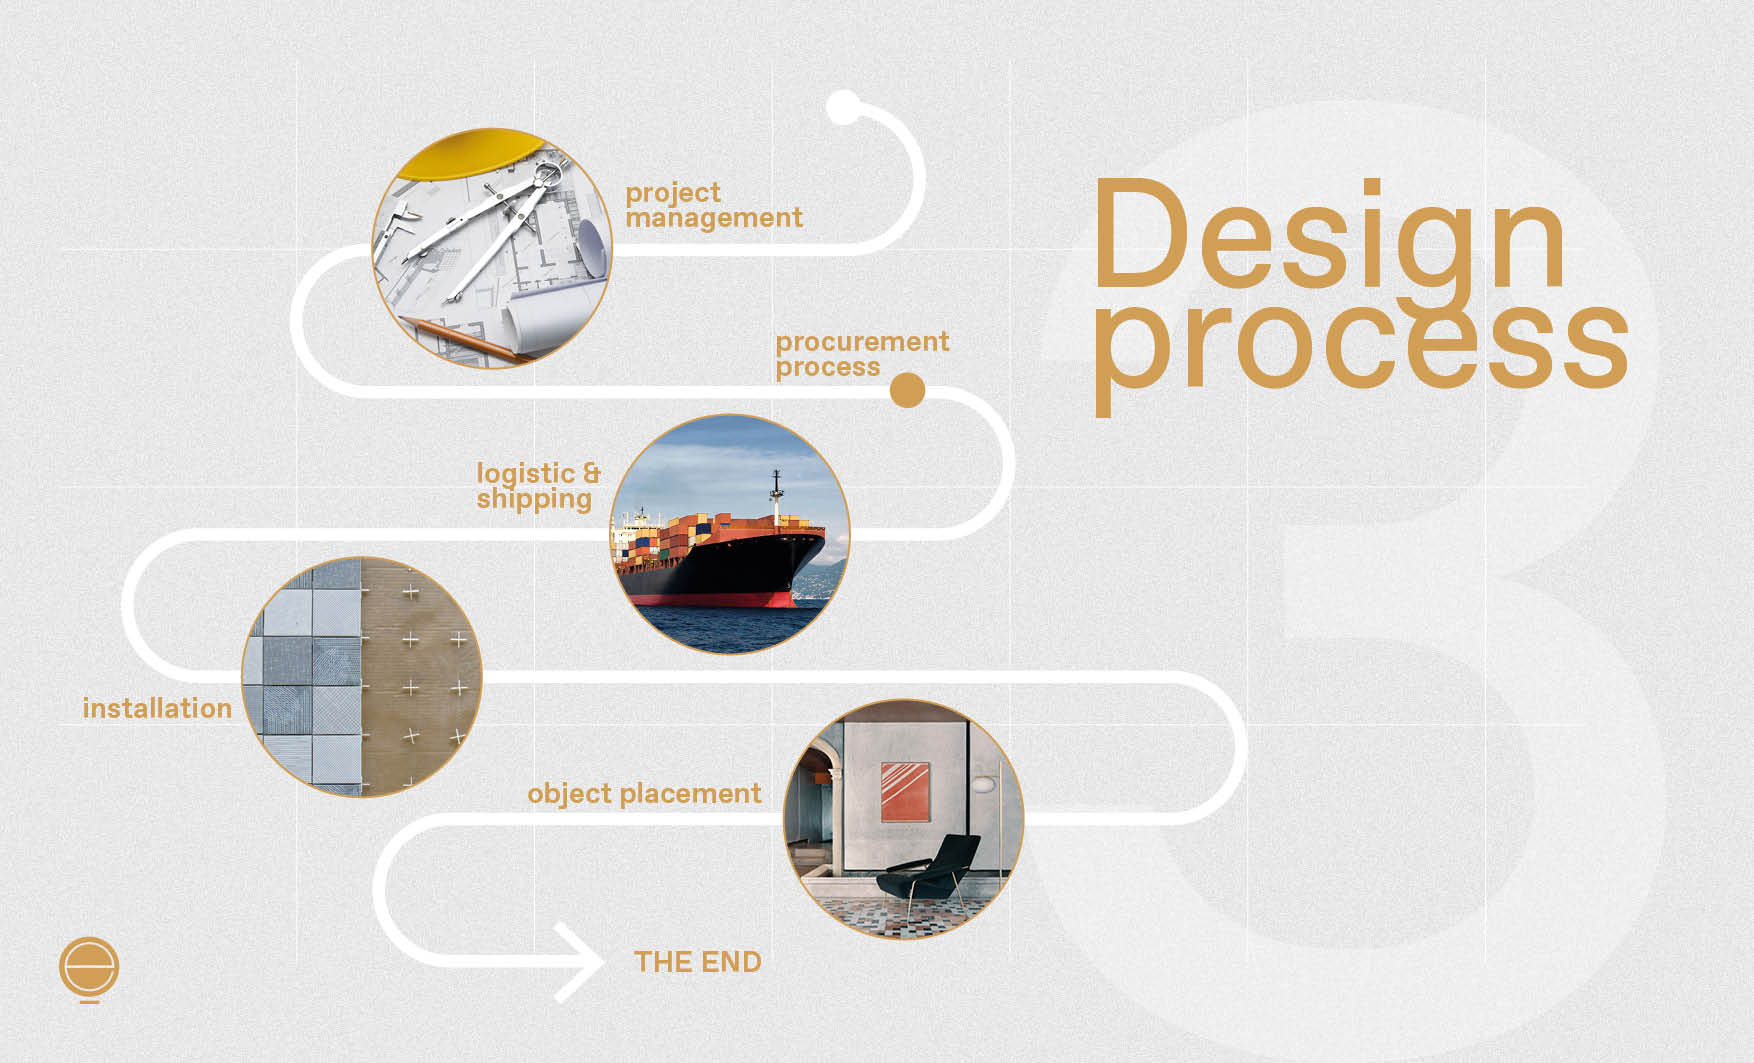 Continue your journey discovering the interior design consultation process in the third map